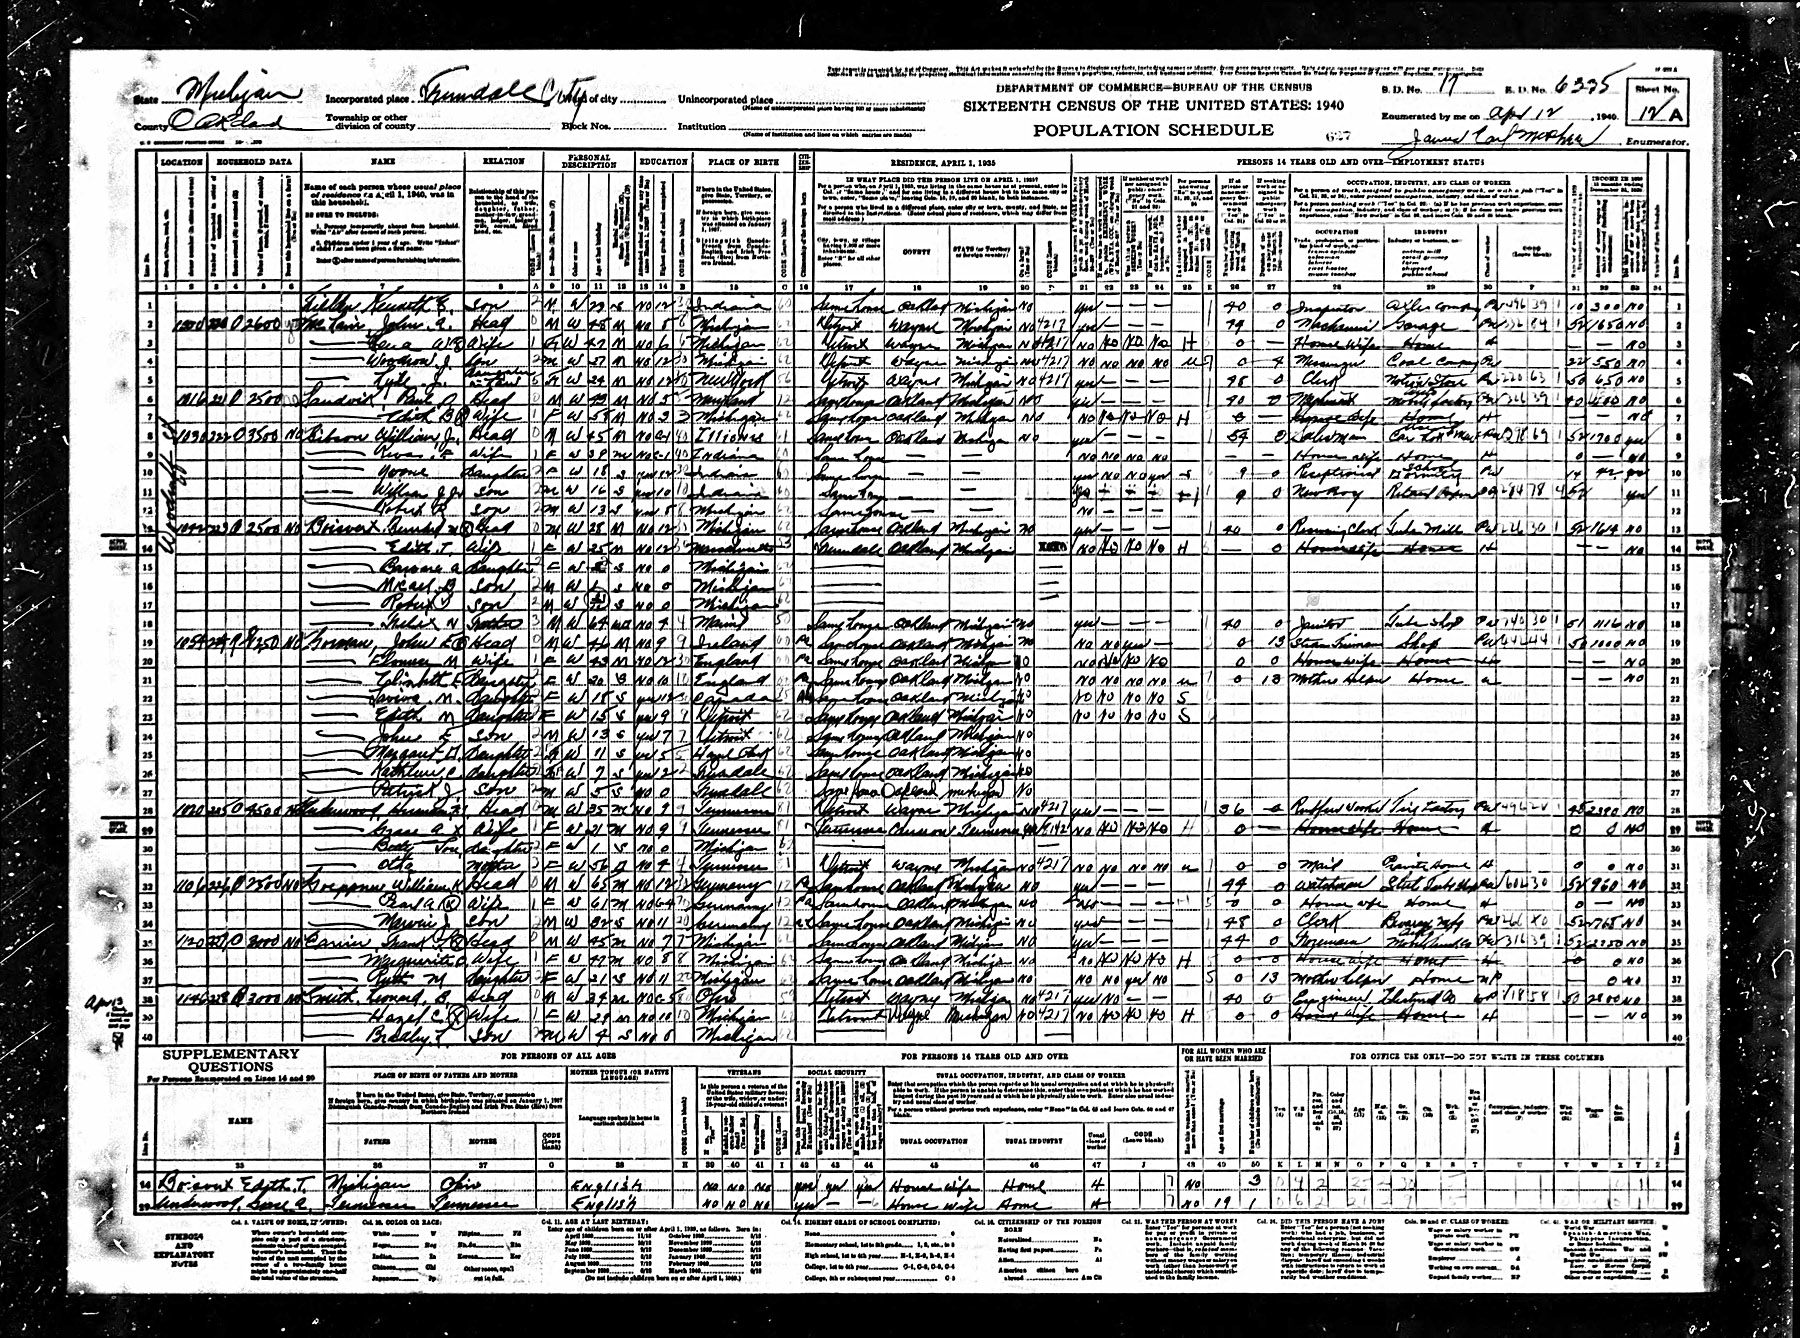 barneyboisvert_1940-census